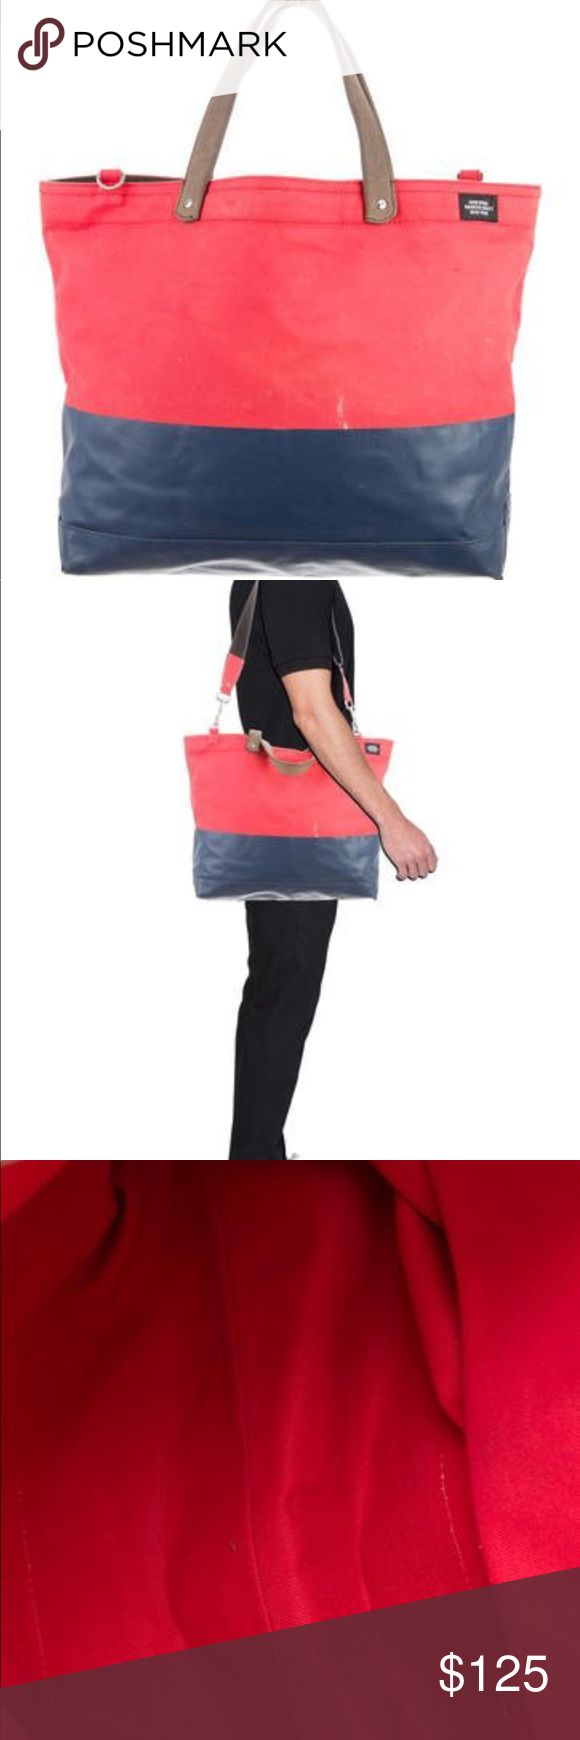 Jack Spade Bag Jack Spade Red Canvas with coated blue canvas bag. In good Condition. Some marks as seen in photos. Comes with shoulder strap. Great for the beach or a weekend trip. Look fresh with this on your side. Jack Spade Bags Luggage & Travel Bags